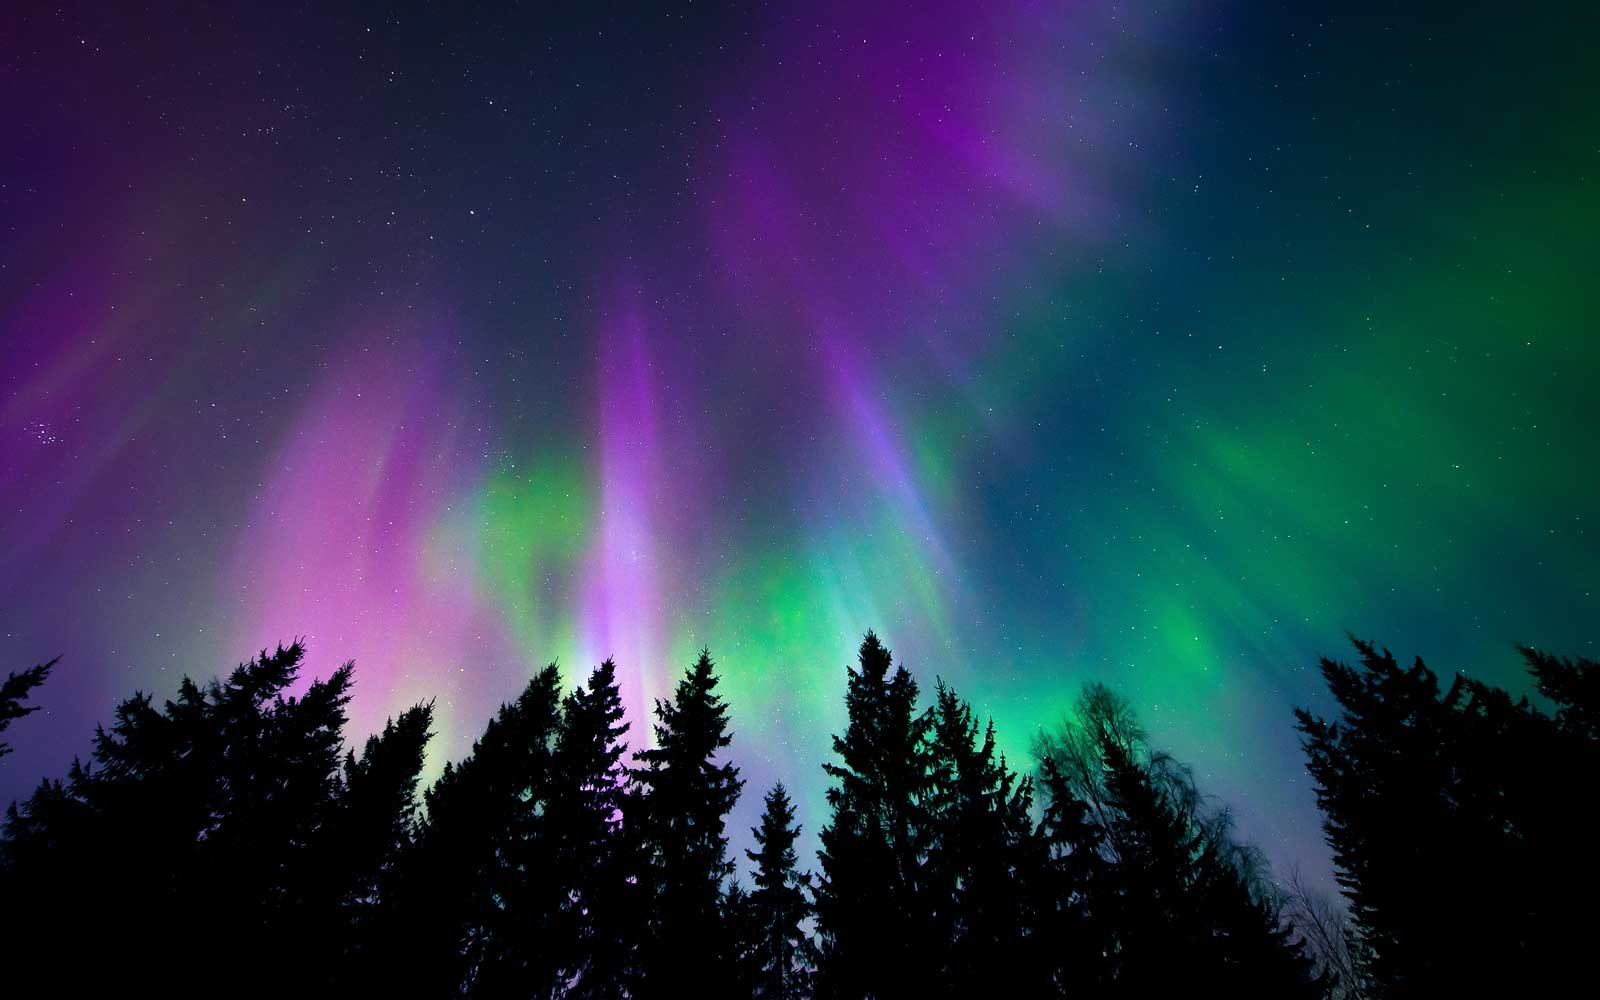 Colorful Northern lights shining above trees